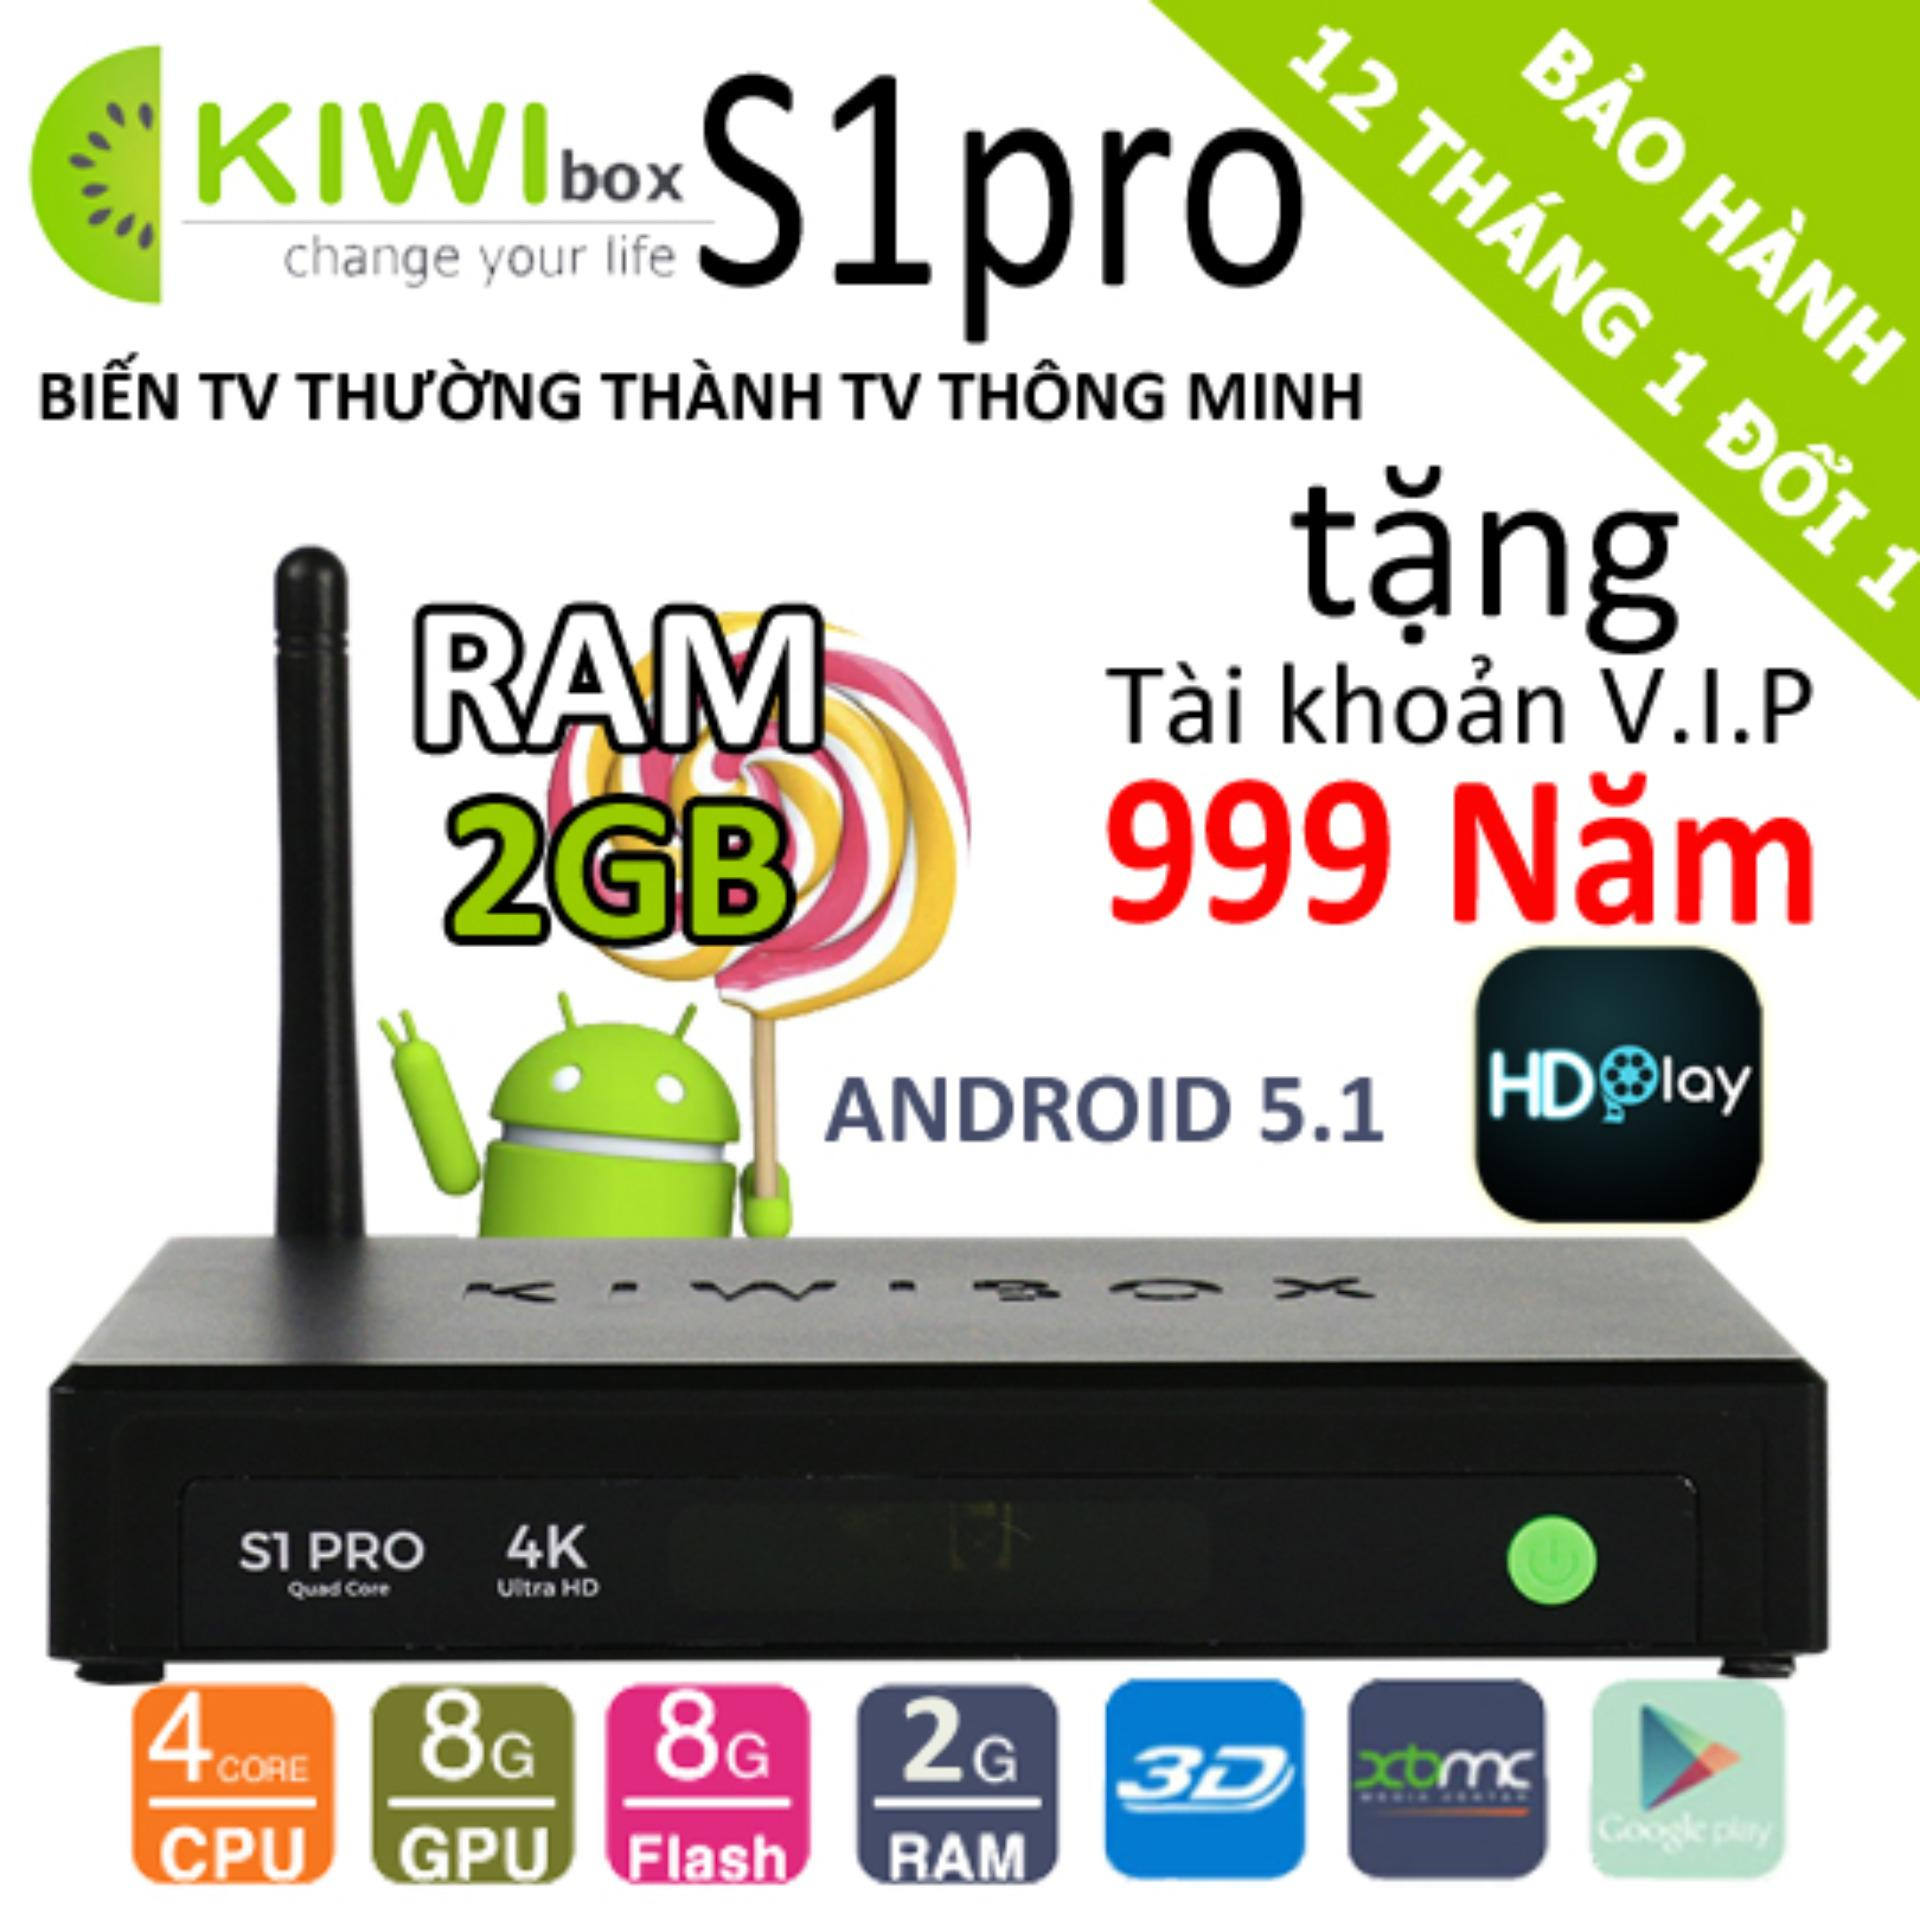 Tv Box Kiwi S1 Pro 4K 2Gb Ram 2018